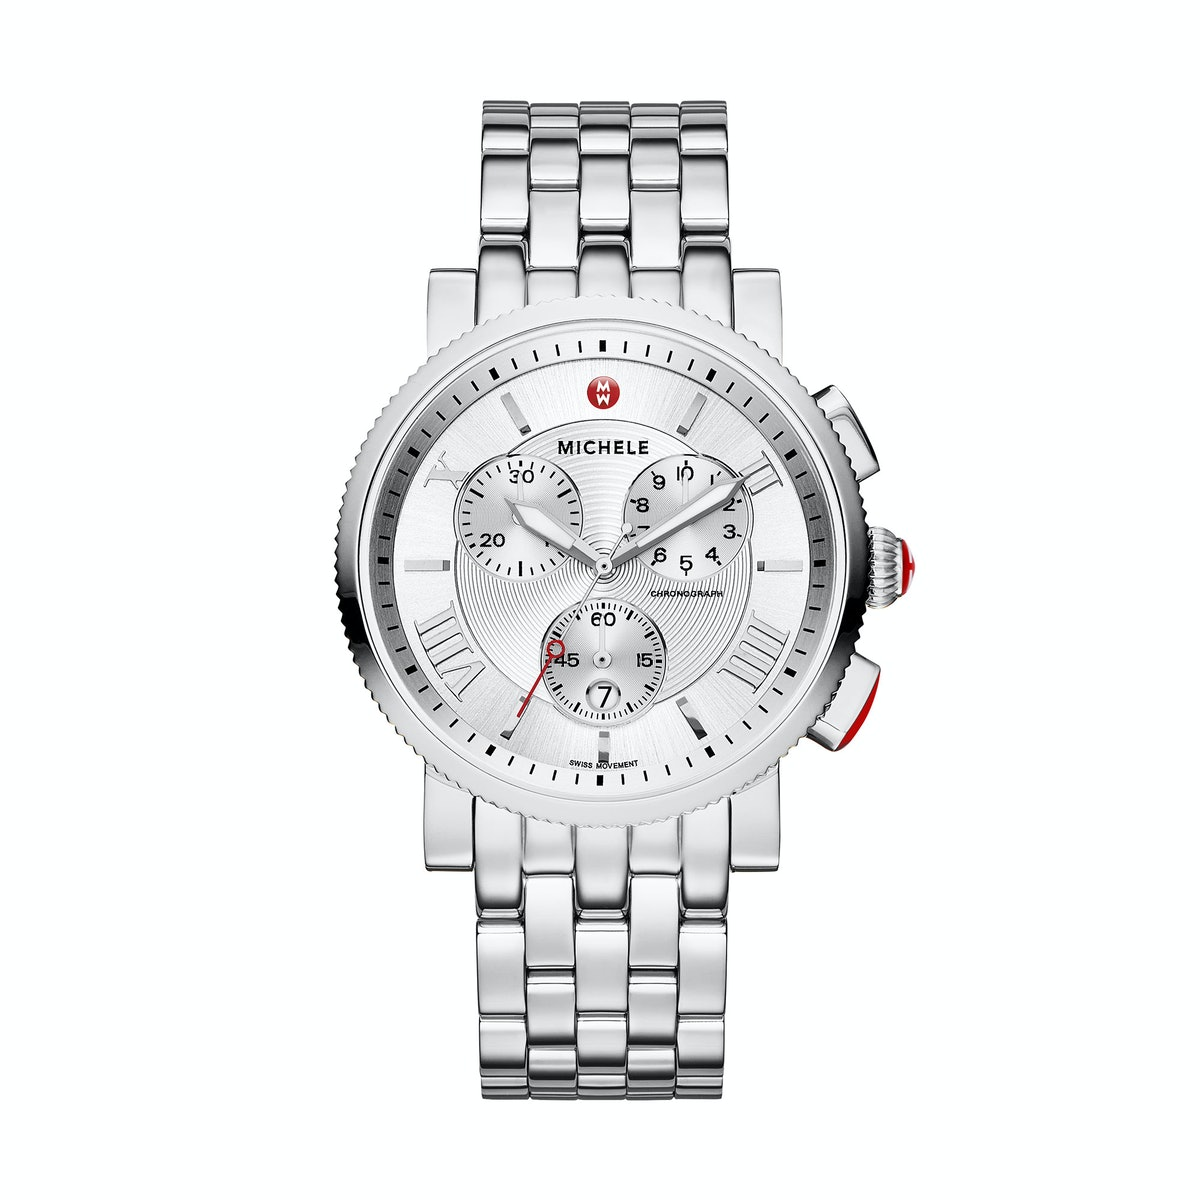 MICHELE stainless steel watch